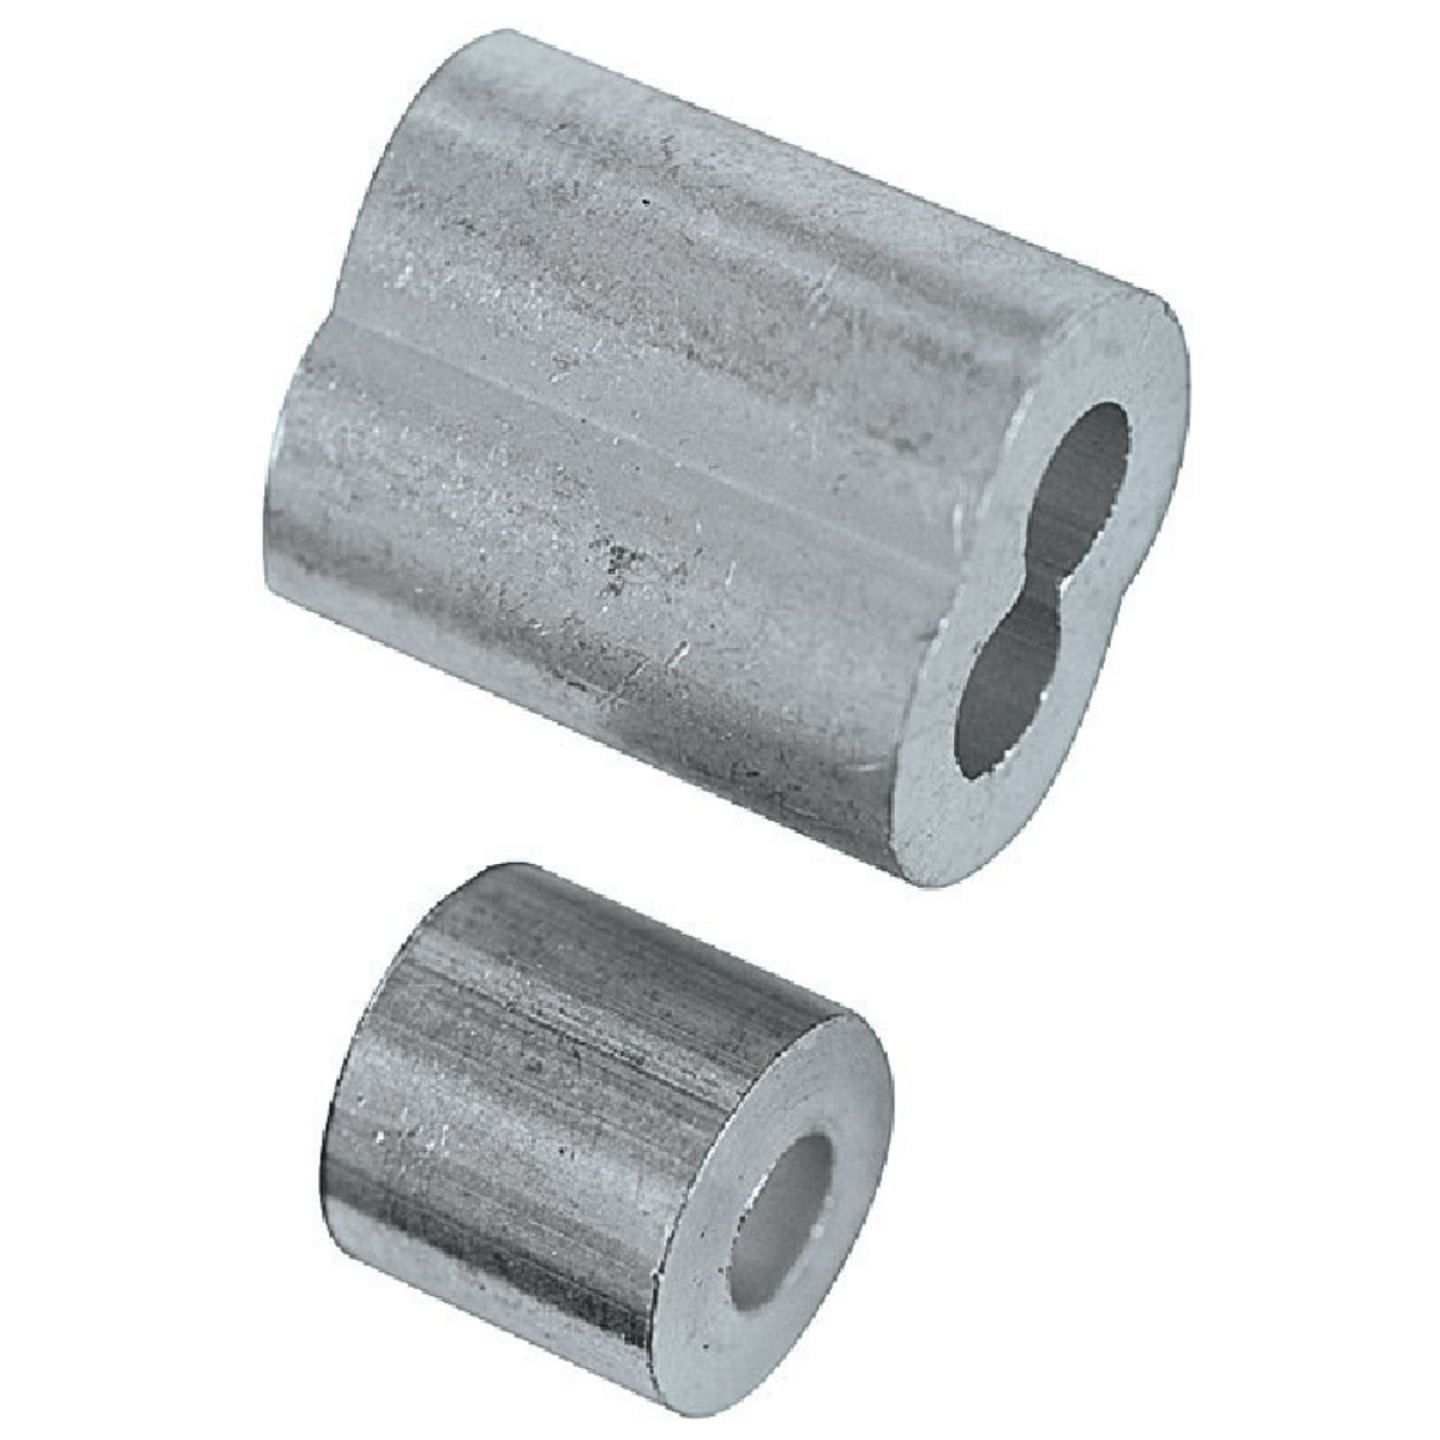 National 1/8 In. Aluminum Garage Door Ferrule & Stop Kit Image 2